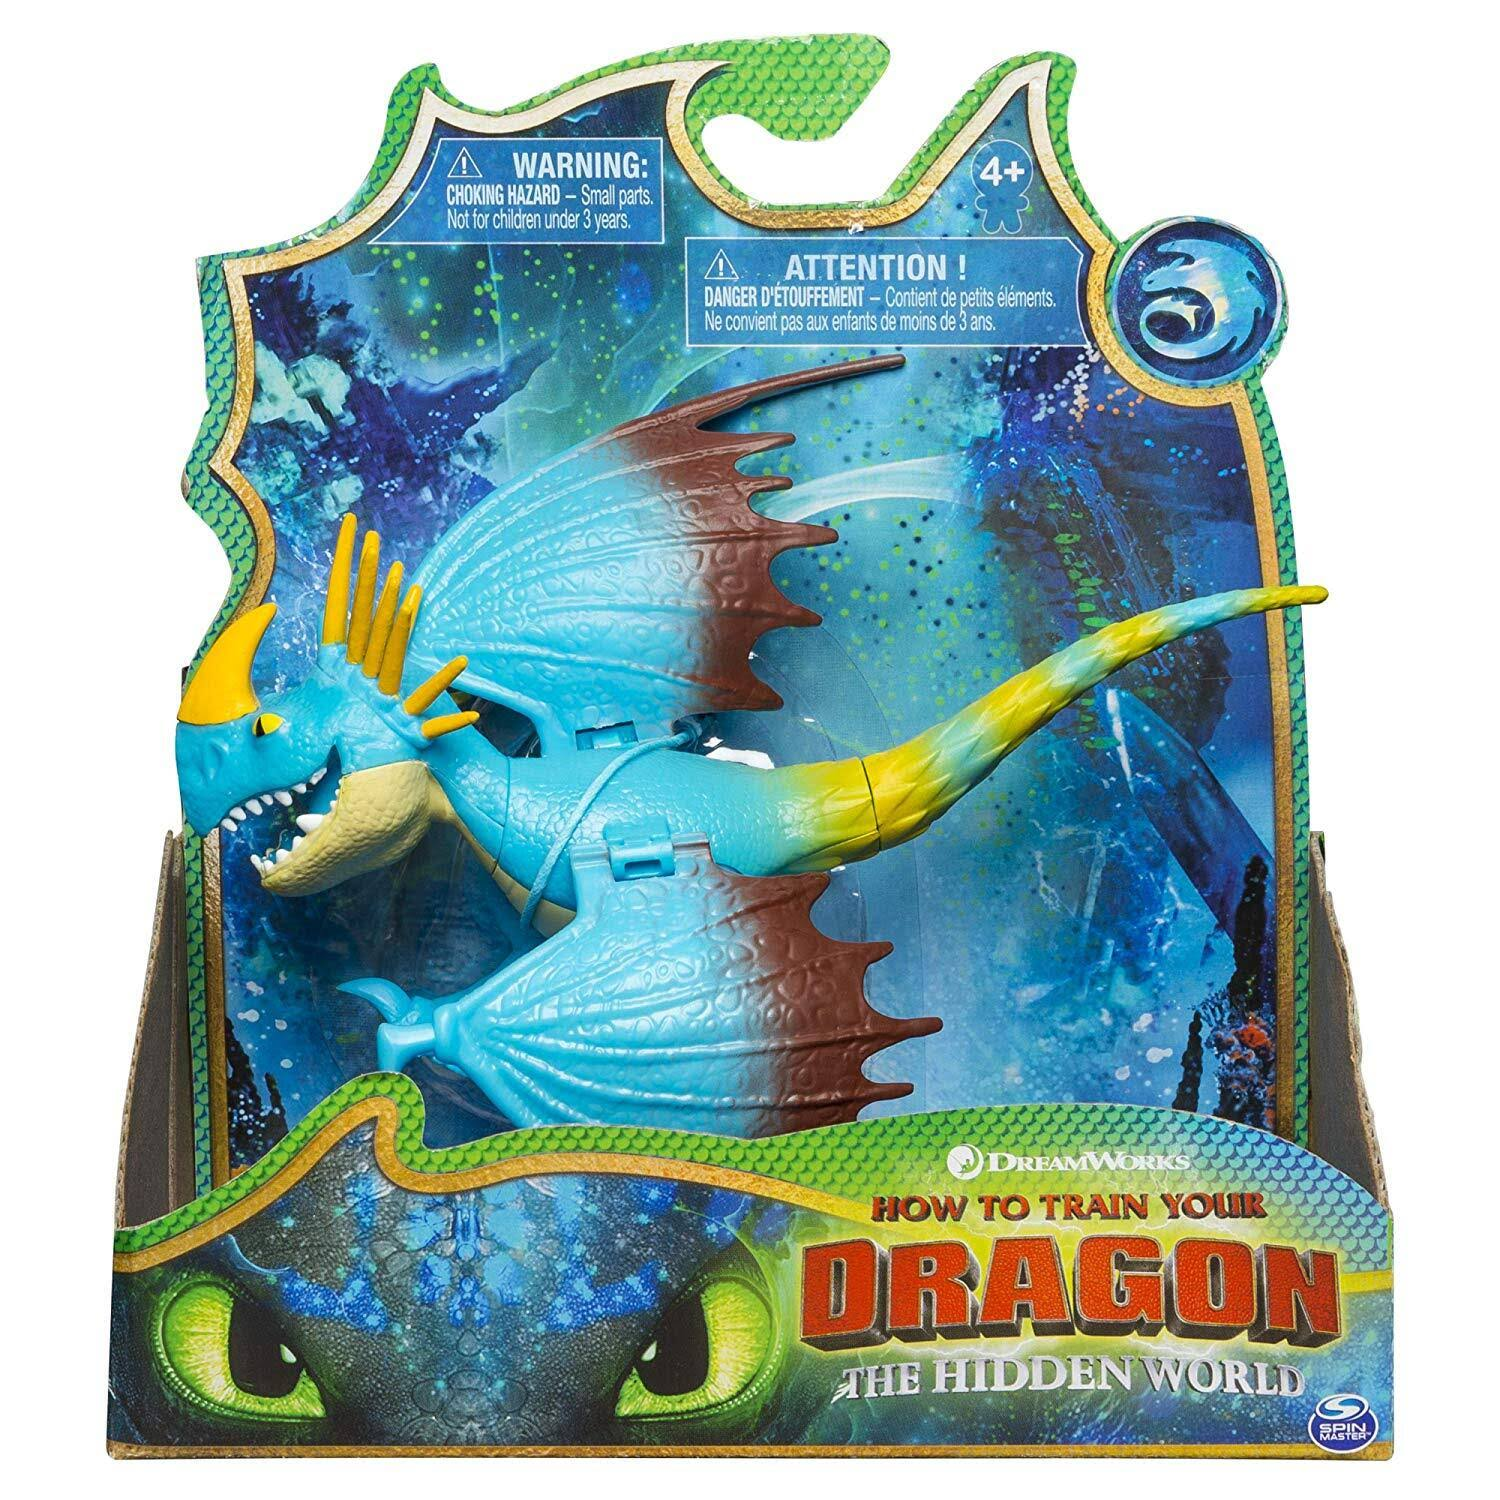 Dreamworks Dragons How to Train Your Dragon The Hidden World Stormfly Figure - 8""